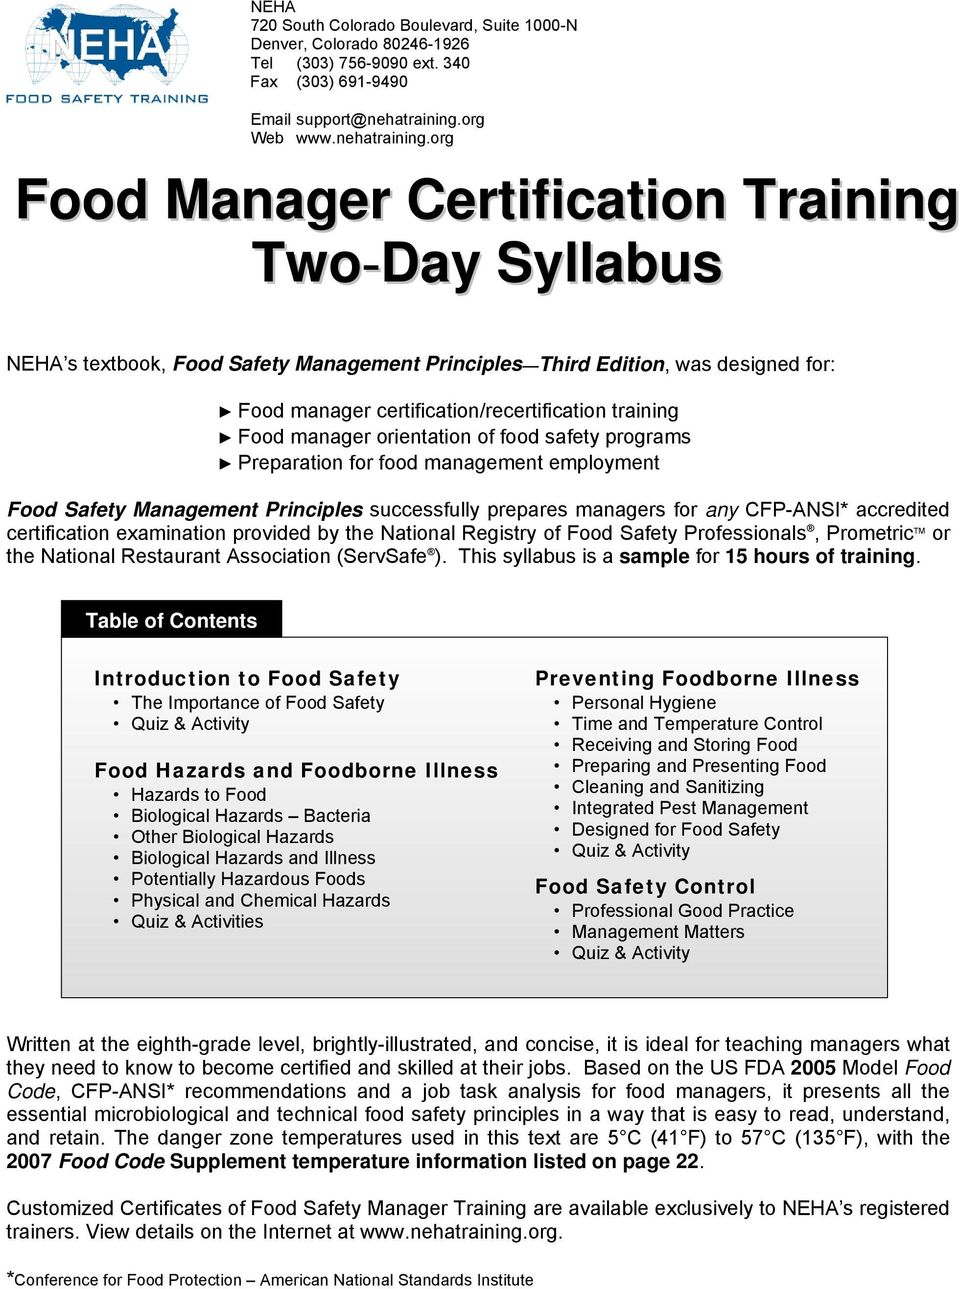 Food manager certification/recertification training Food